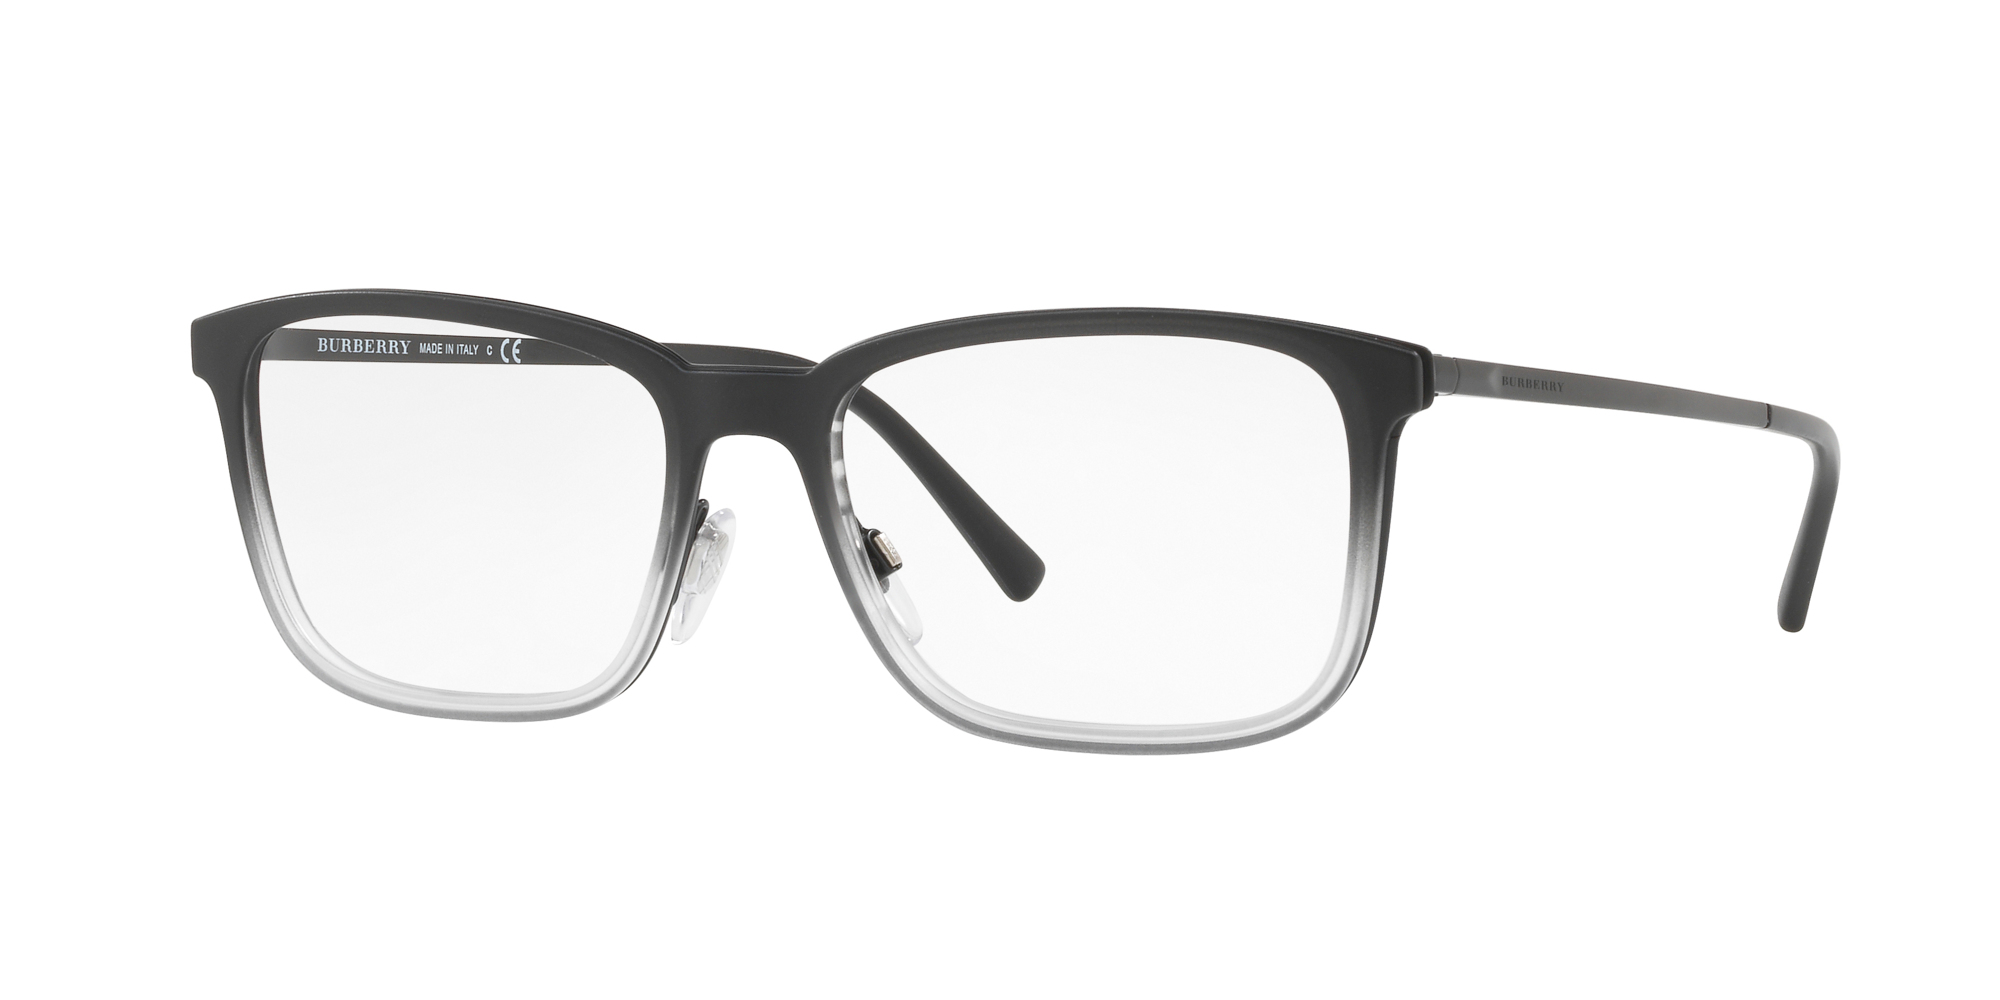 Burberry Brille 0BE1315541007 bei ROTTLER